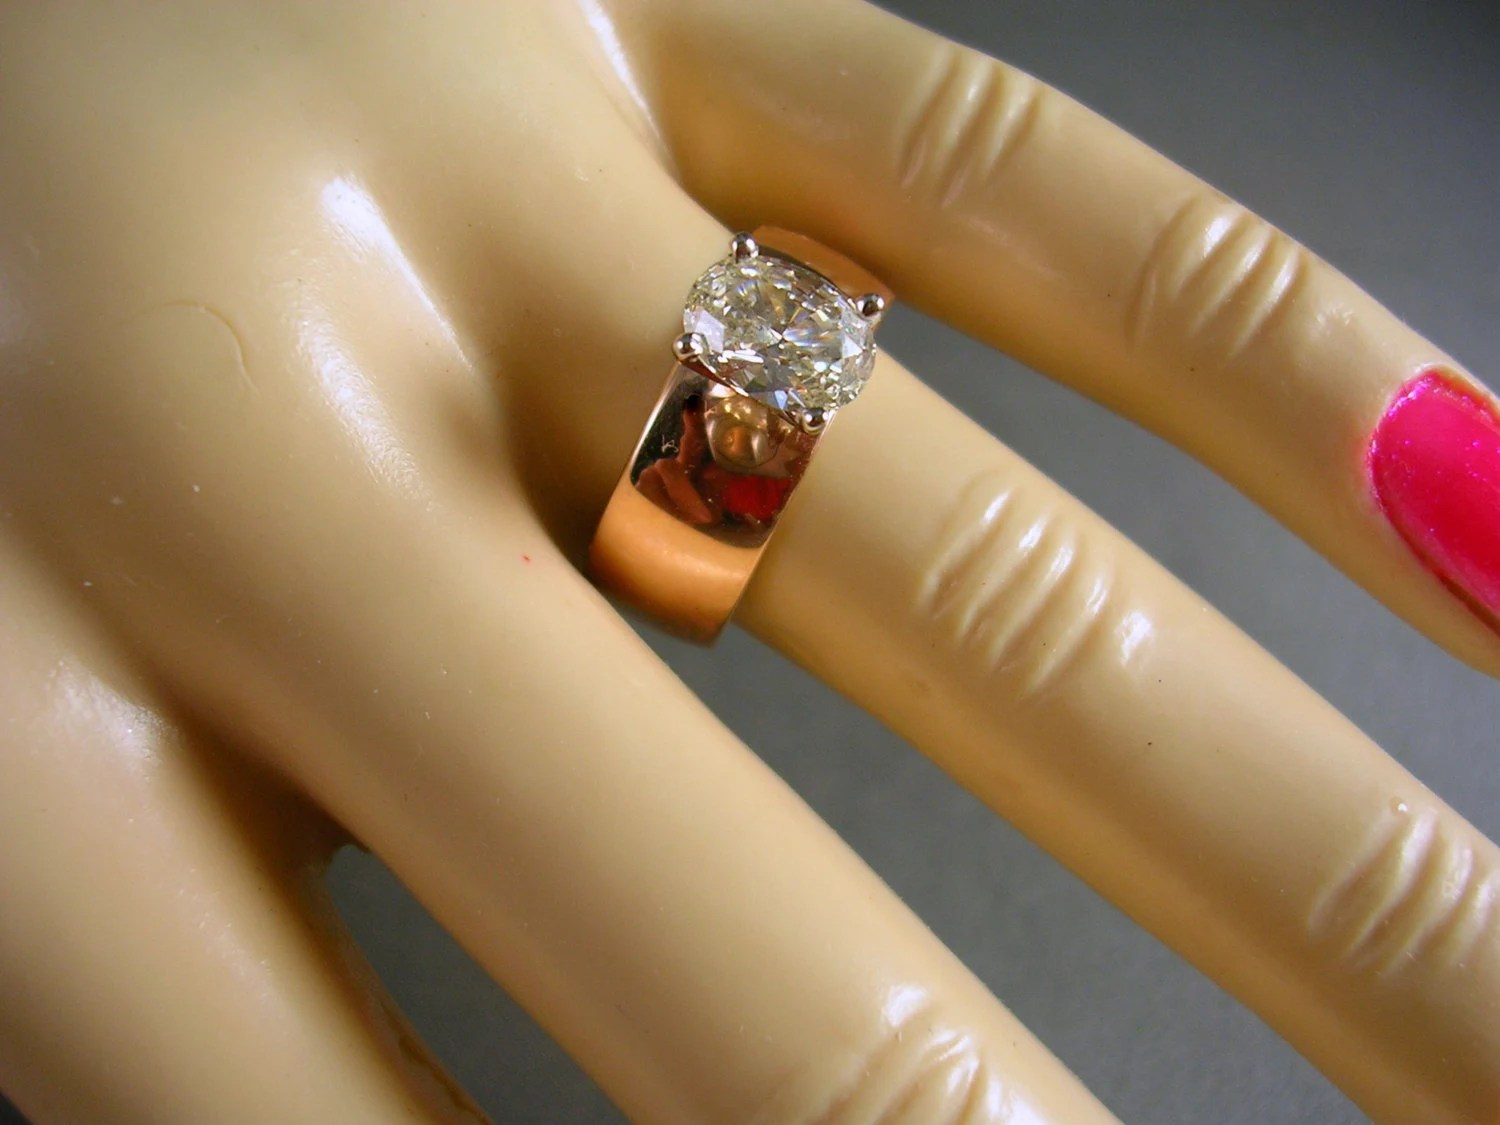 Russian Rose Gold Wide Band Ring 84 Carat Oval Diamond 55gm